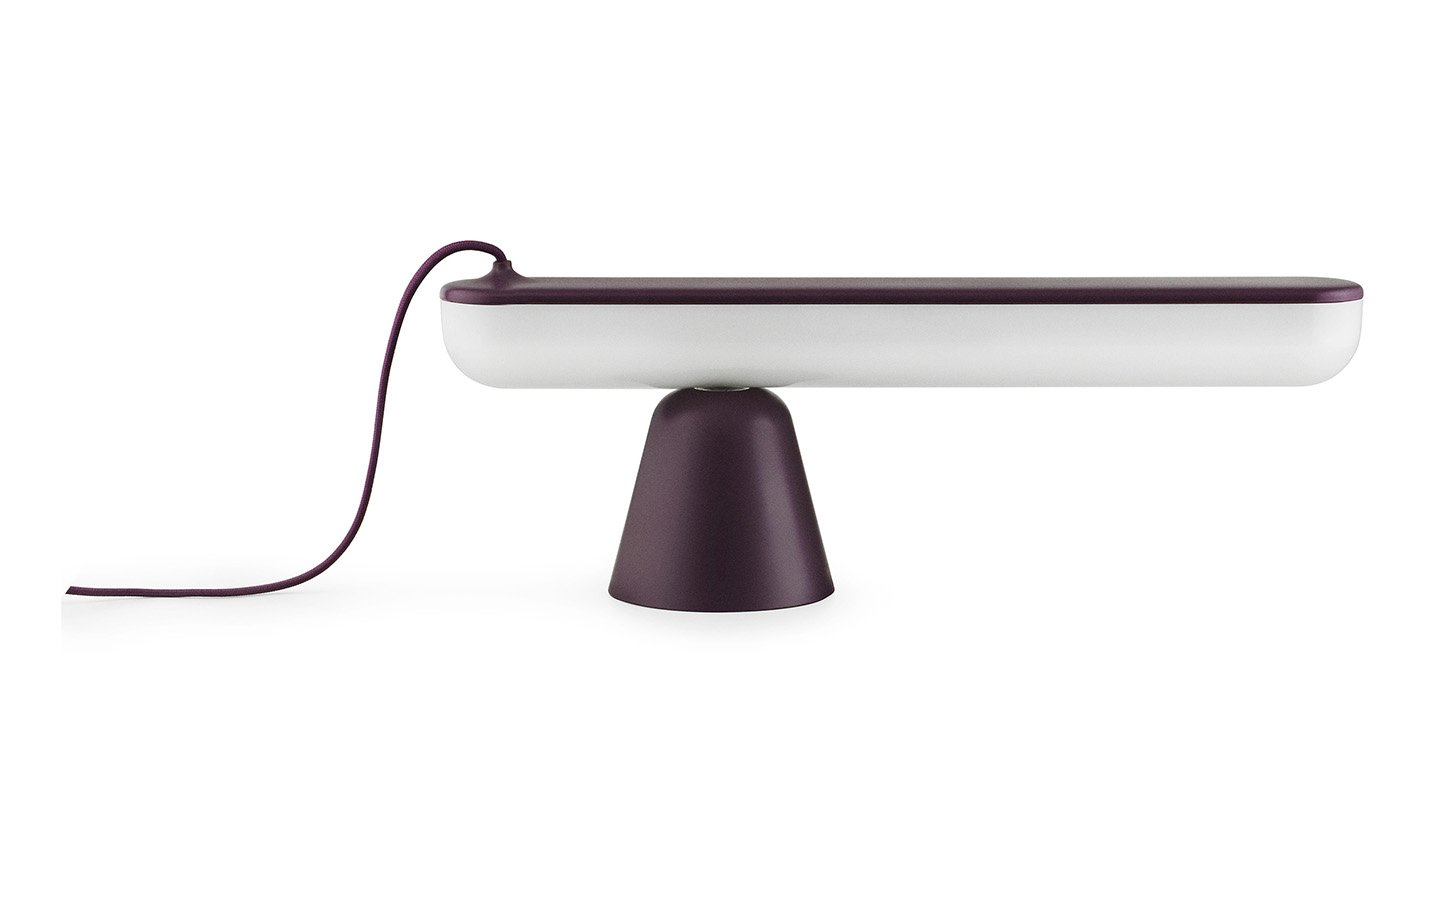 Acrobat table lamp – Aubergine